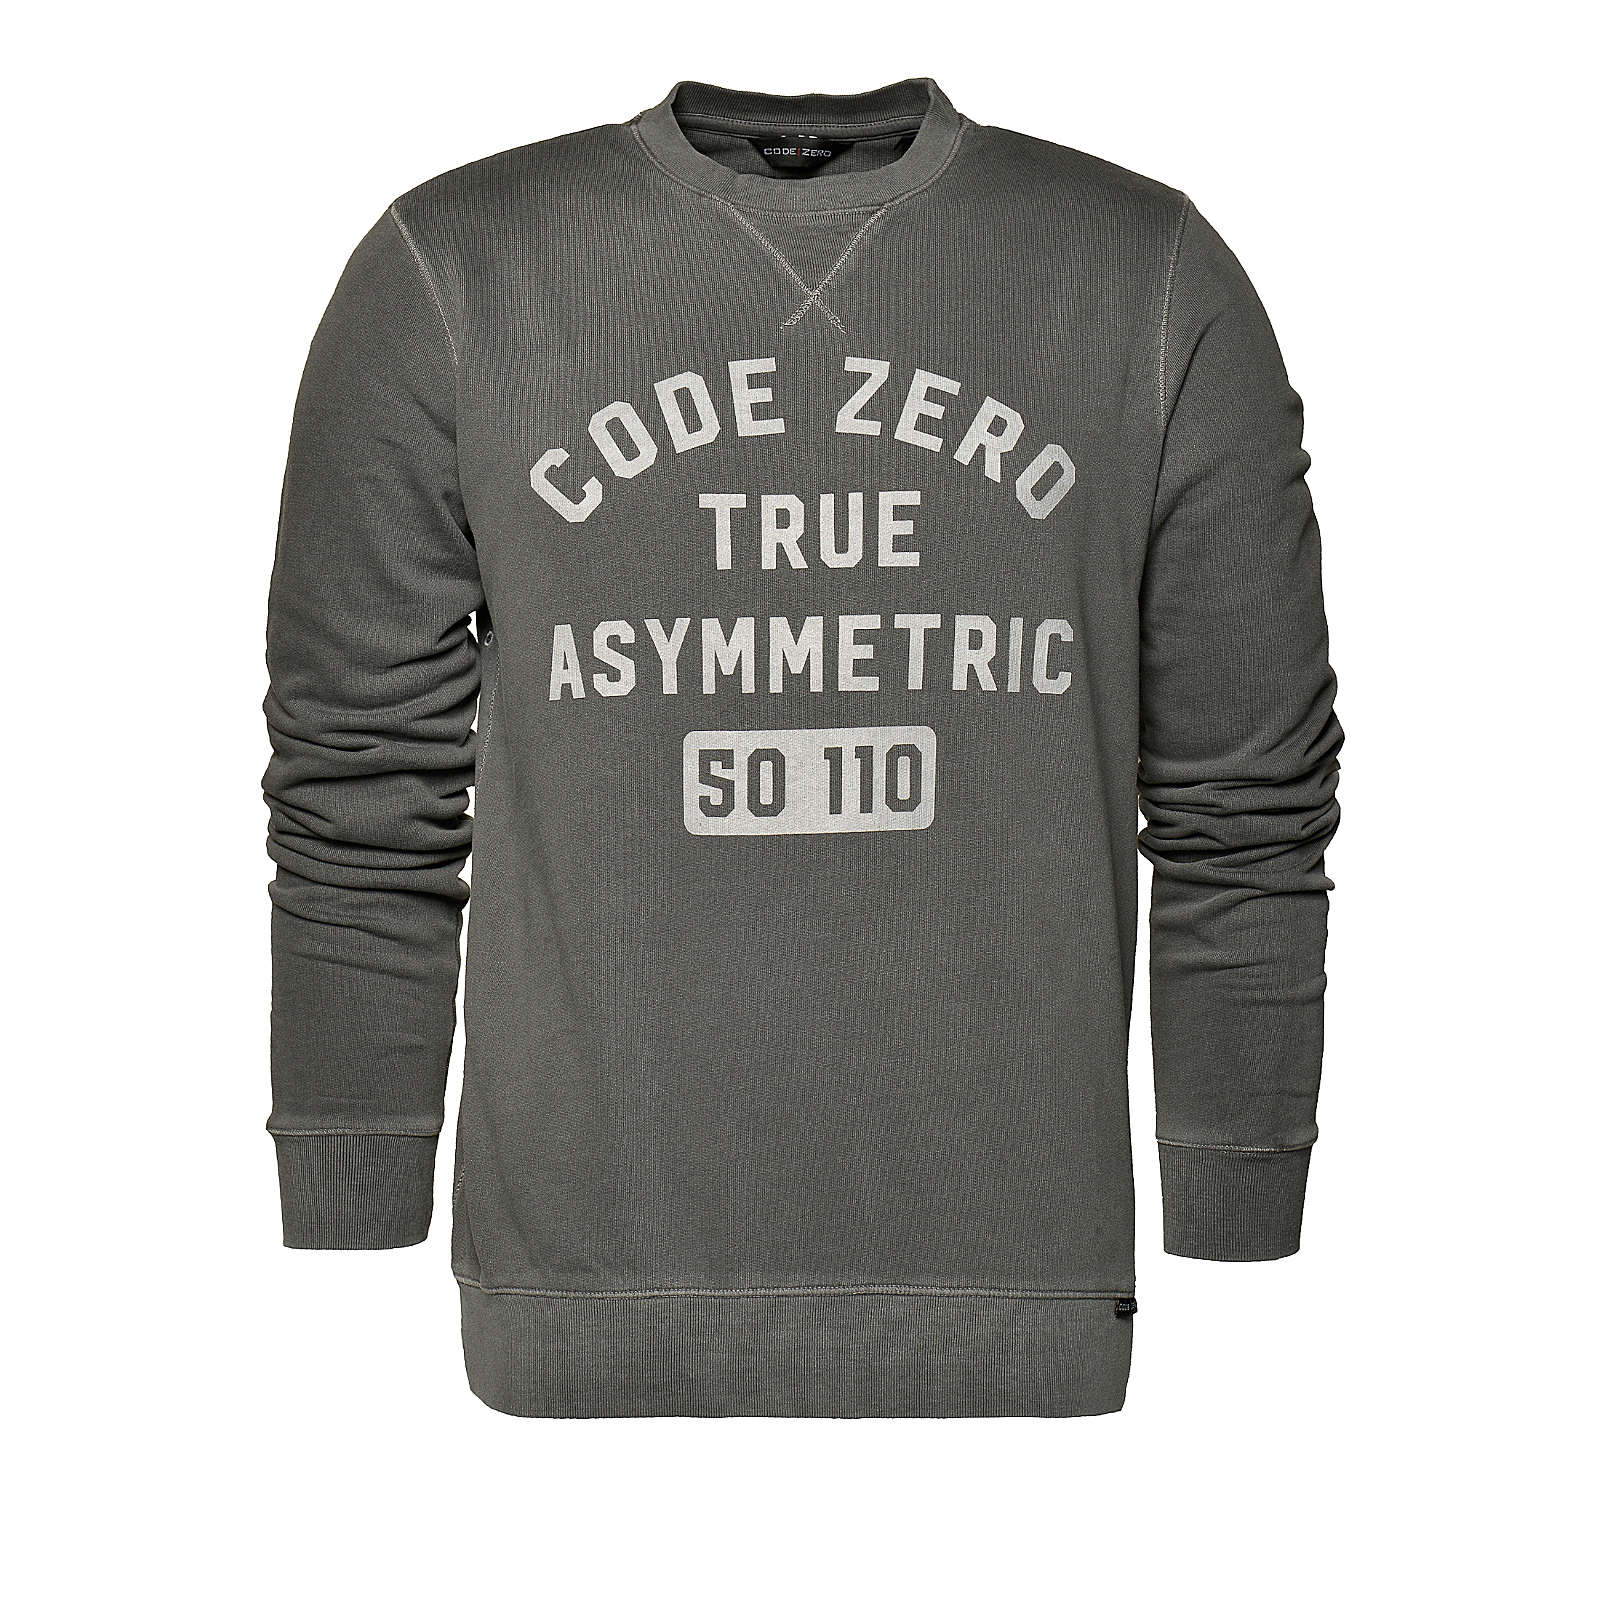 CODE-ZERO Sweatshirt Batten Sweater anthrazit Herren Gr. 44/46